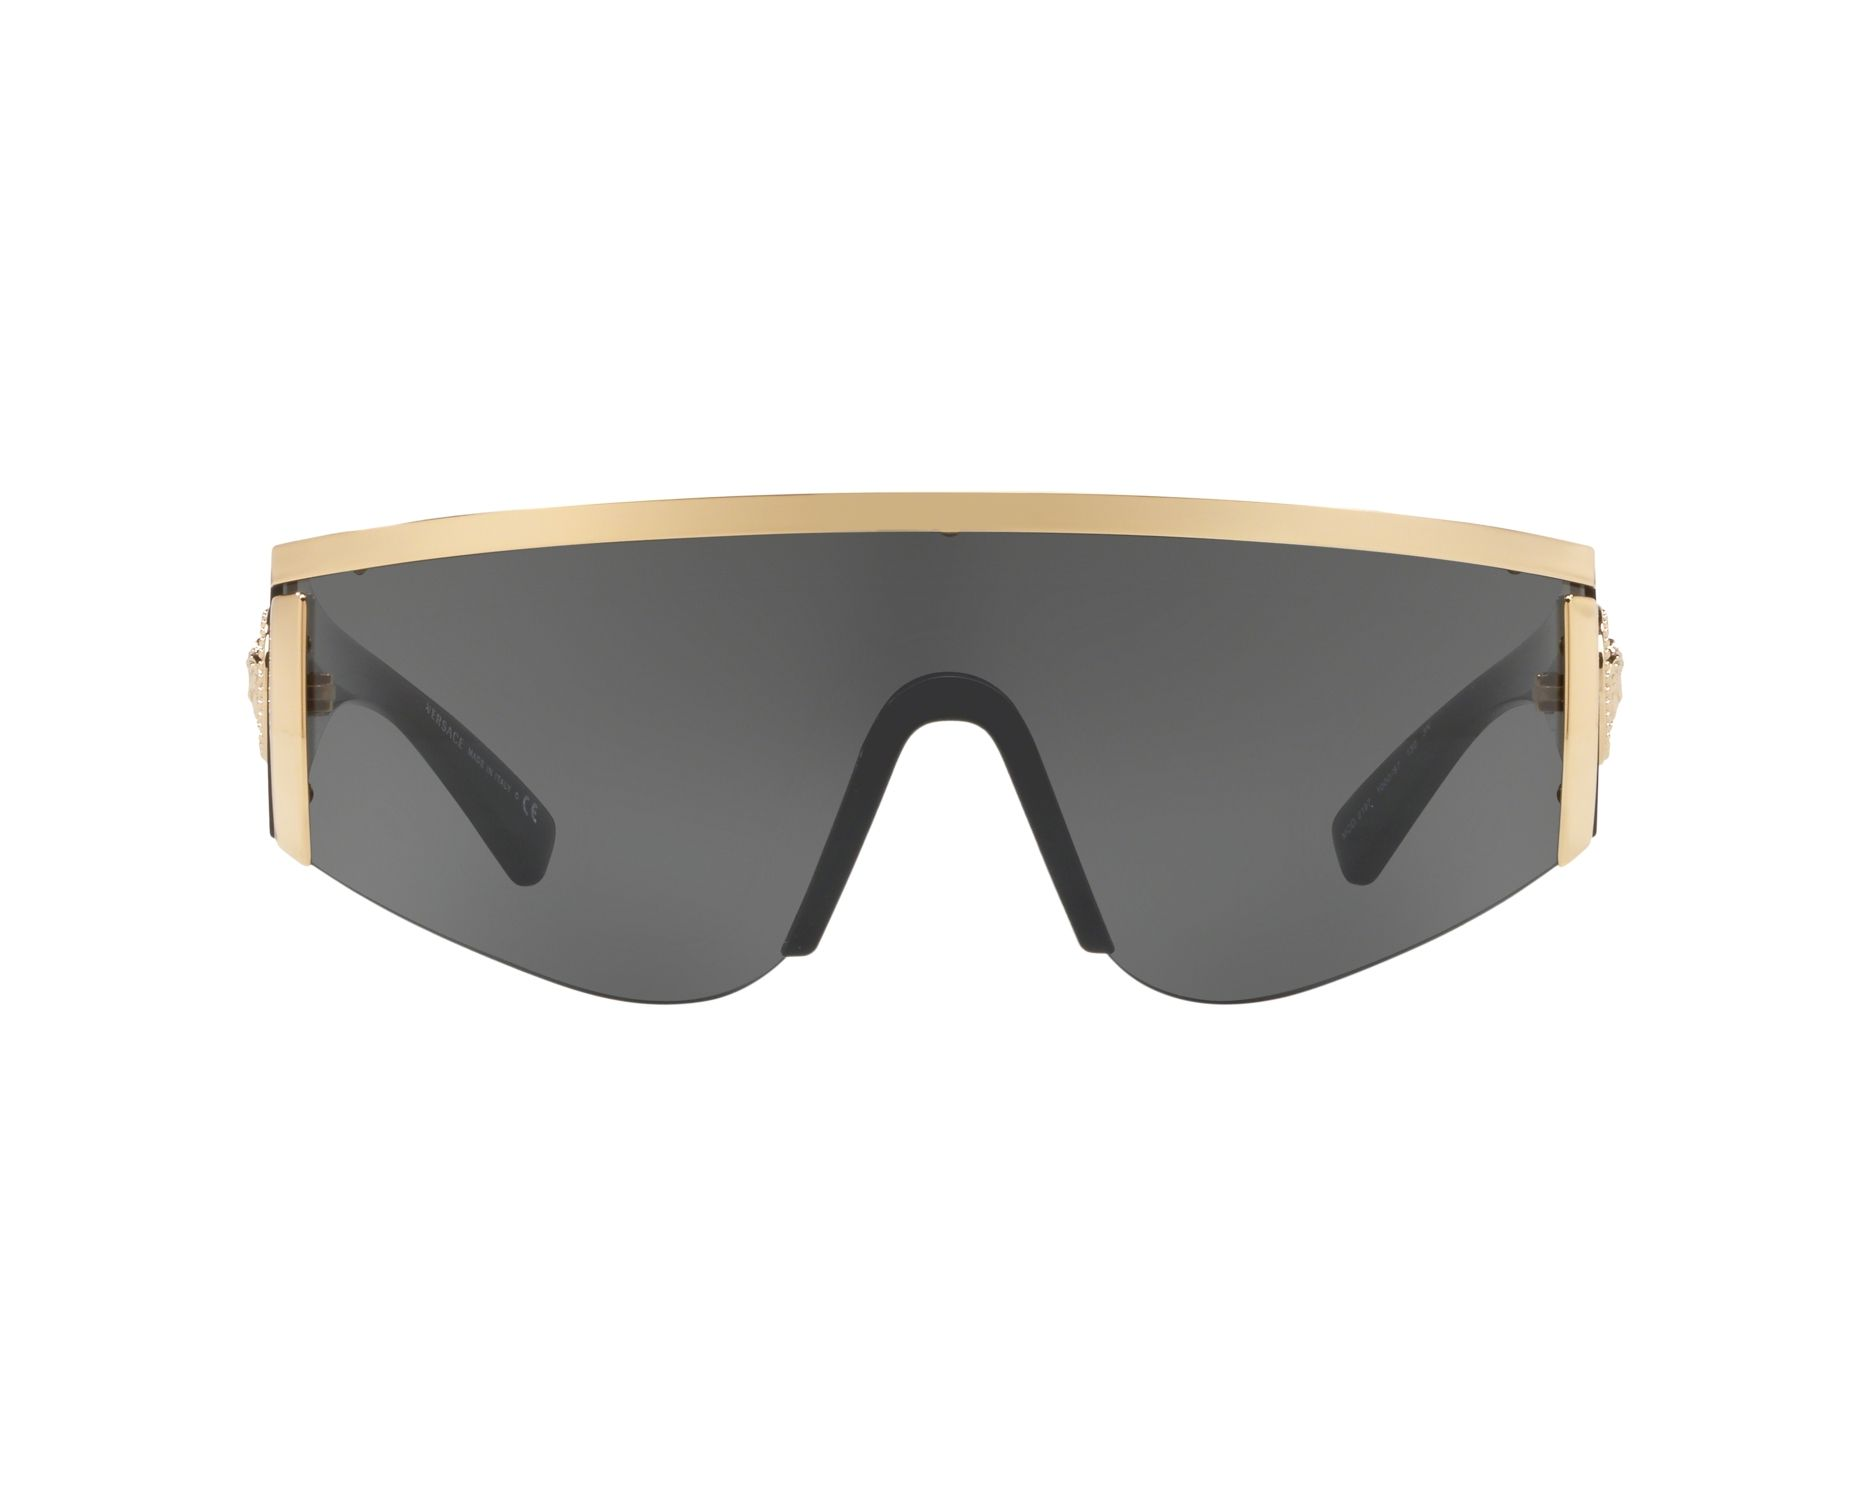 Sunglasses Versace VE-2197 100087 - Black Gold 360 degree view 1